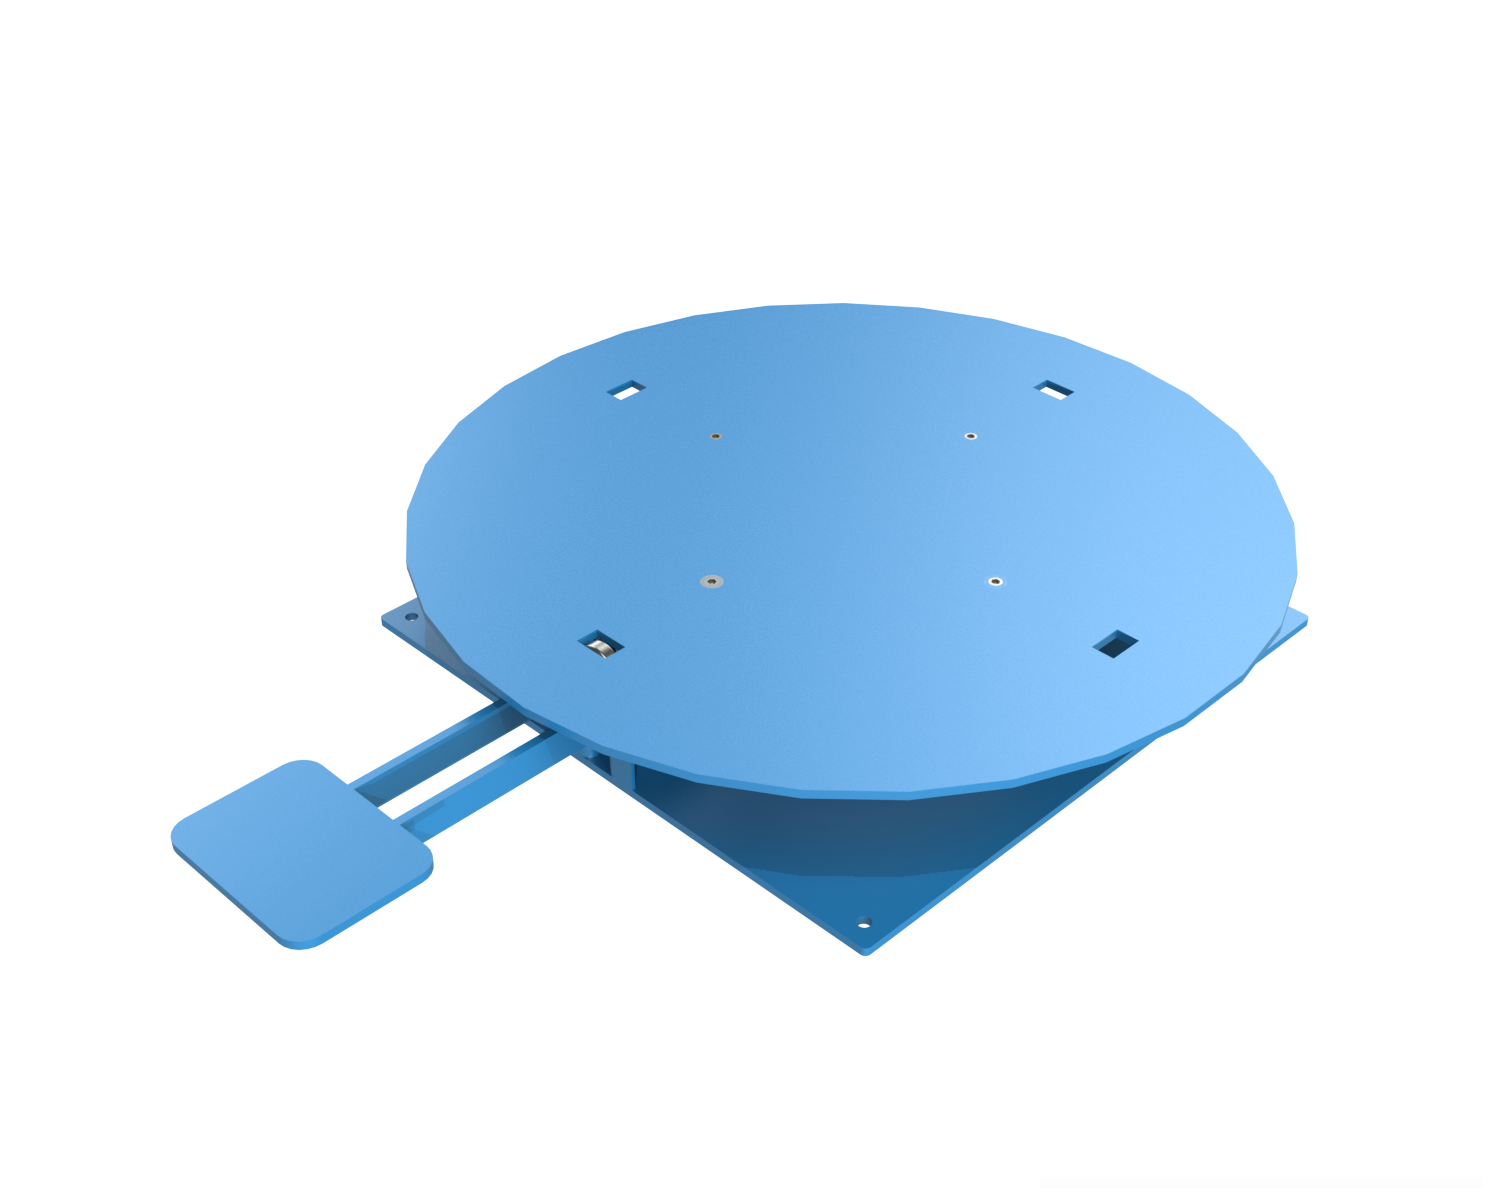 Model LPT is a heavy duty turntable that can be used for loading or unloading pallets, tote pans and boxes. In assembly or repair operations it provides convenient access to all sides of the equipment.